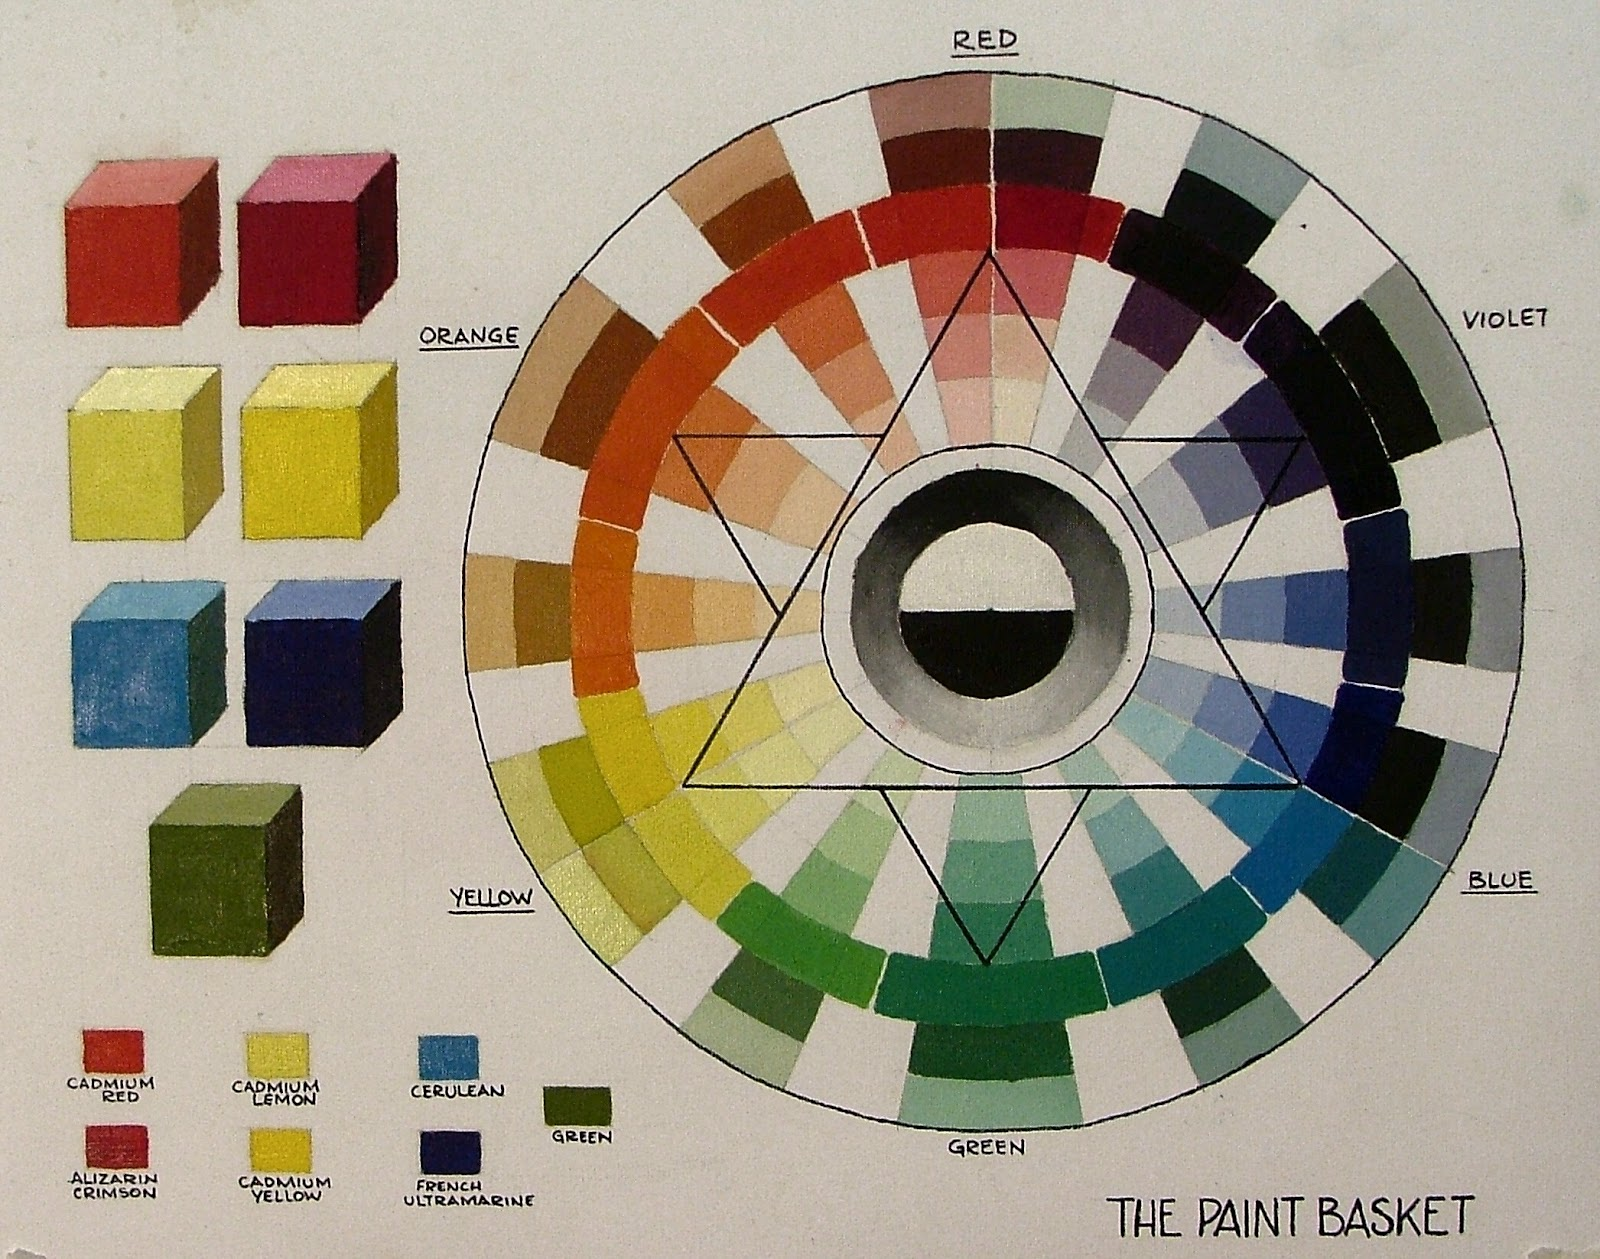 The Fellow In This Video Along With His Companion Website At Paint Basket Helped Me Understand Color Theory Best As It Lies To Creating Colors